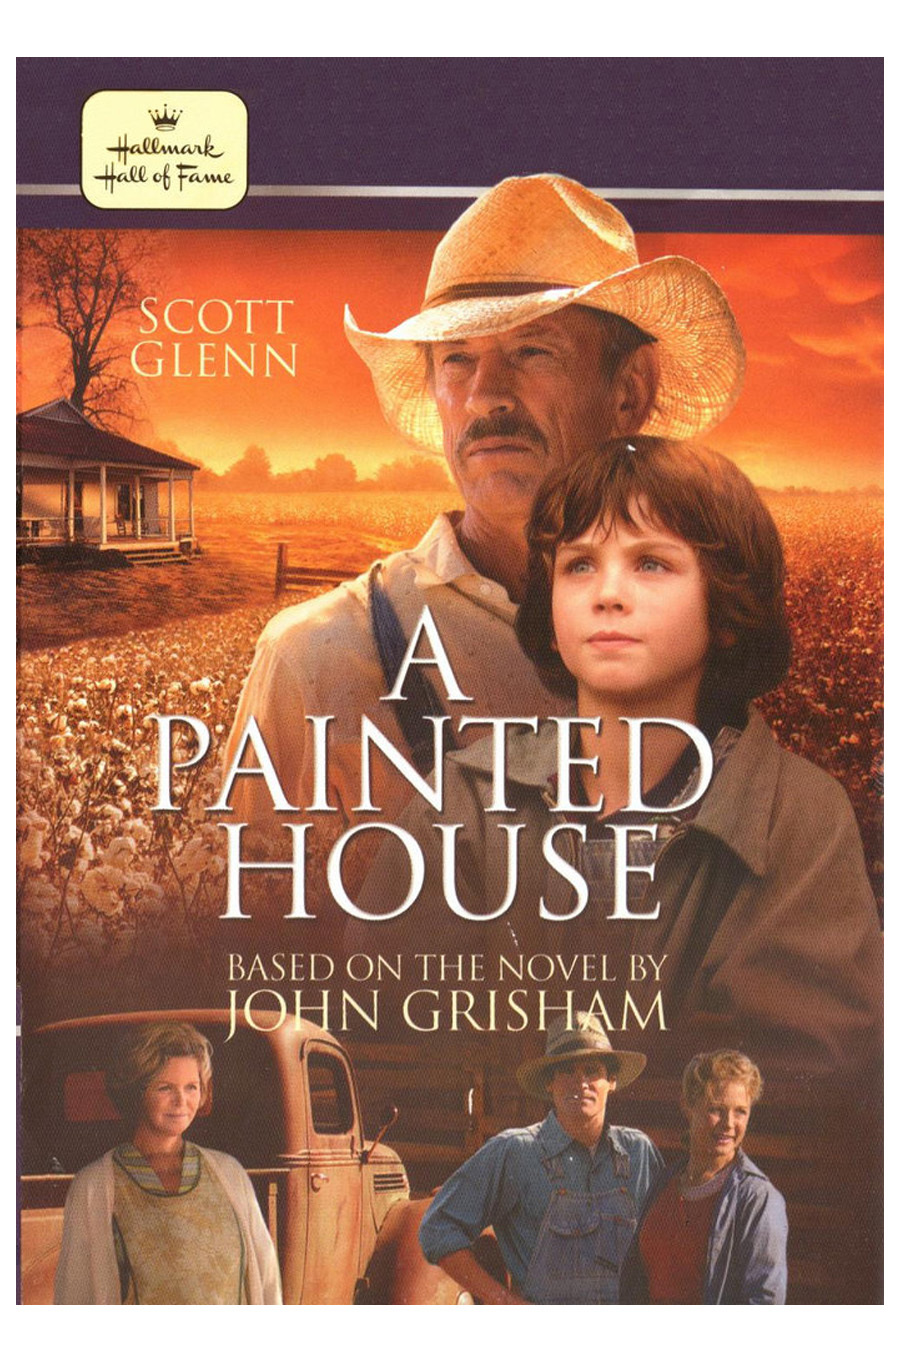 by essay grisham house john painted This simple tale of cotton harvesting in 1952 arkansas offers the curious a  chance to see what grisham would be like without all the lawyers.